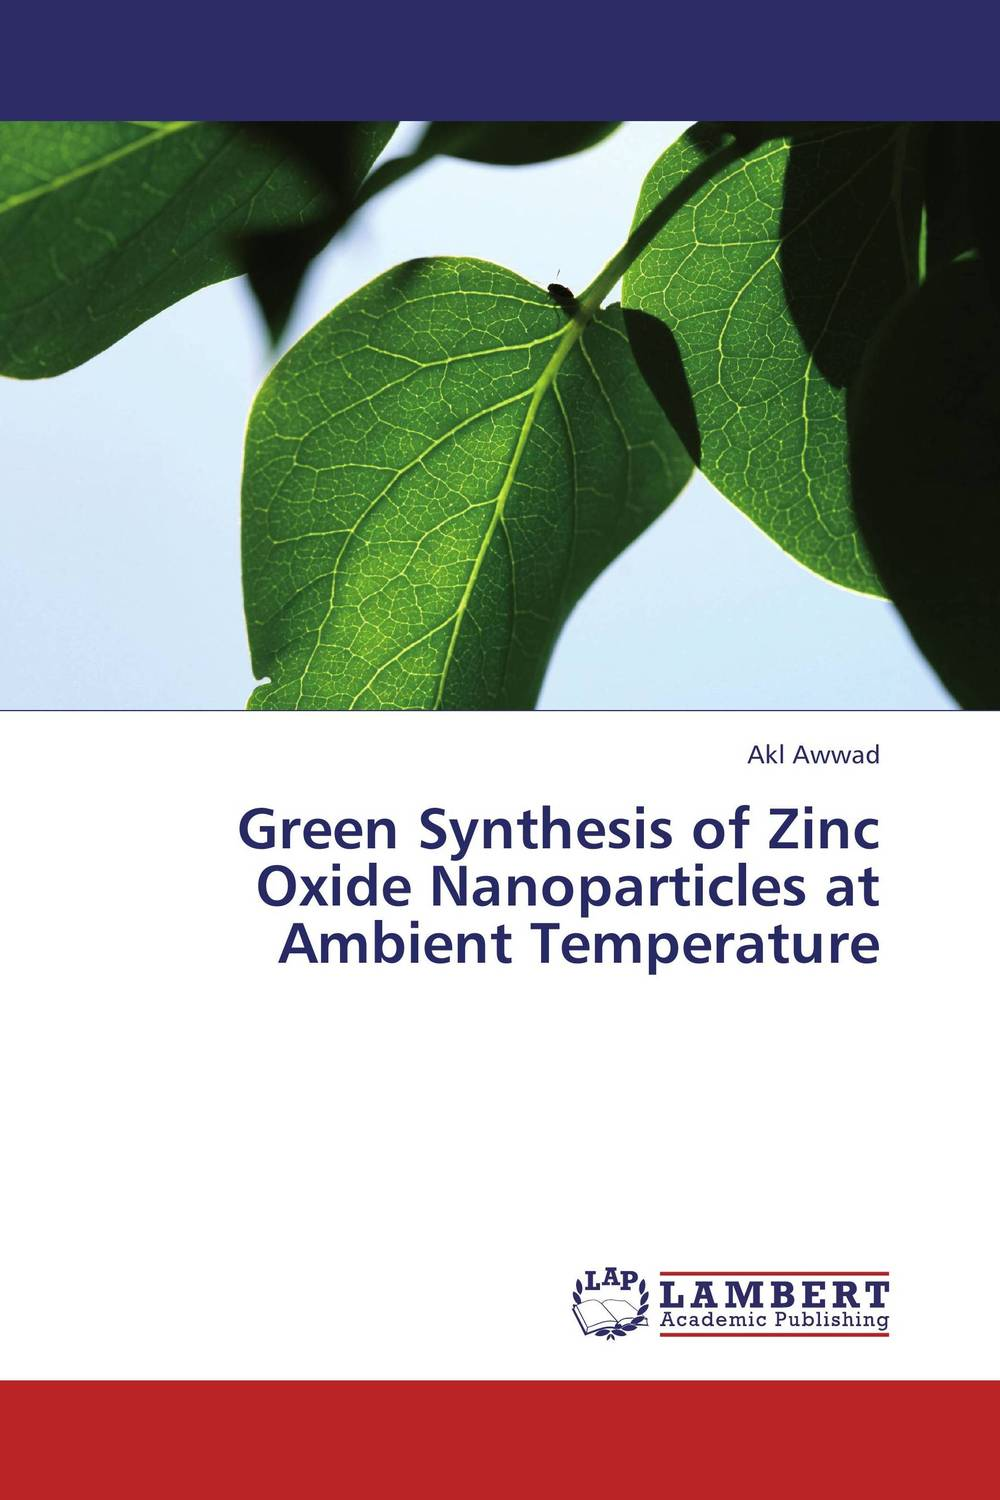 Green Synthesis of Zinc Oxide Nanoparticles at Ambient Temperature zinc oxide and manganese doped zinc oxide nanoparticles